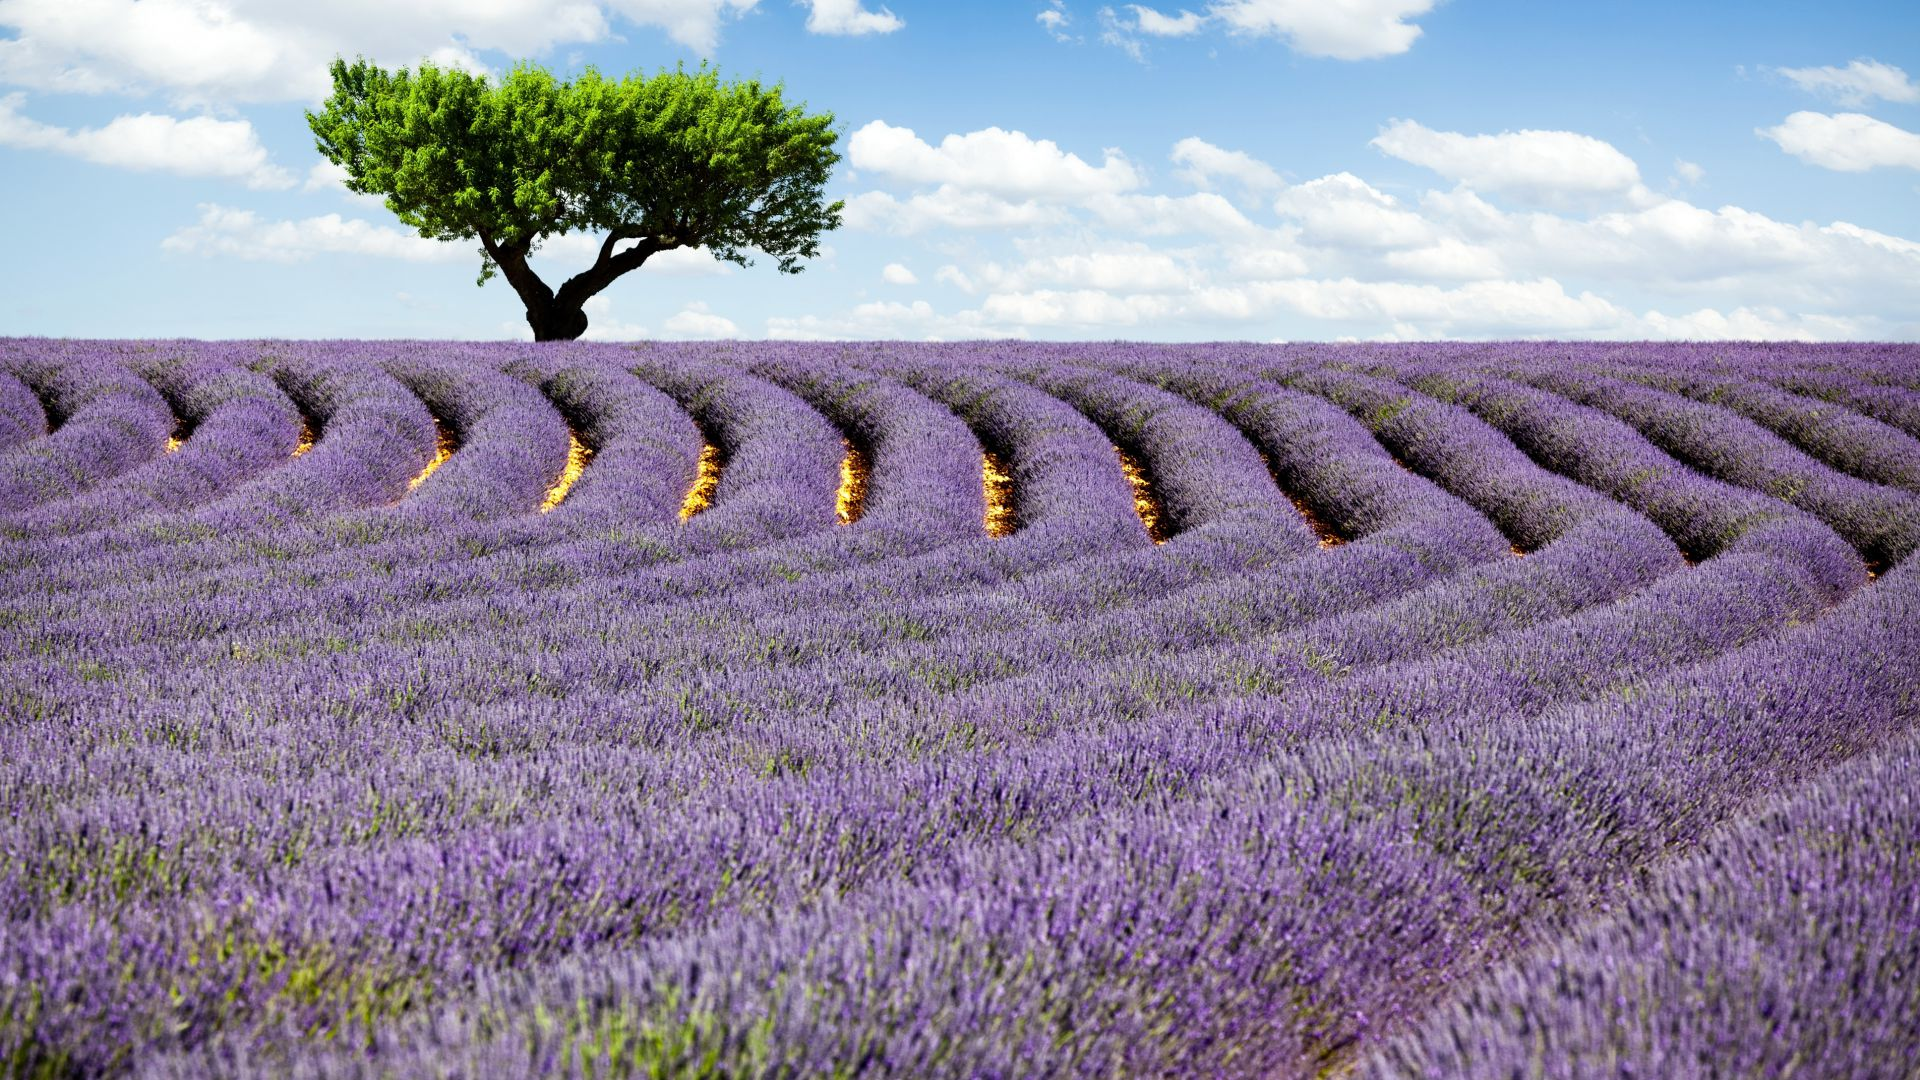 Lavender field, 4k, HD wallpaper, Provence, France, Meadows, lavender, tree, sky (horizontal)